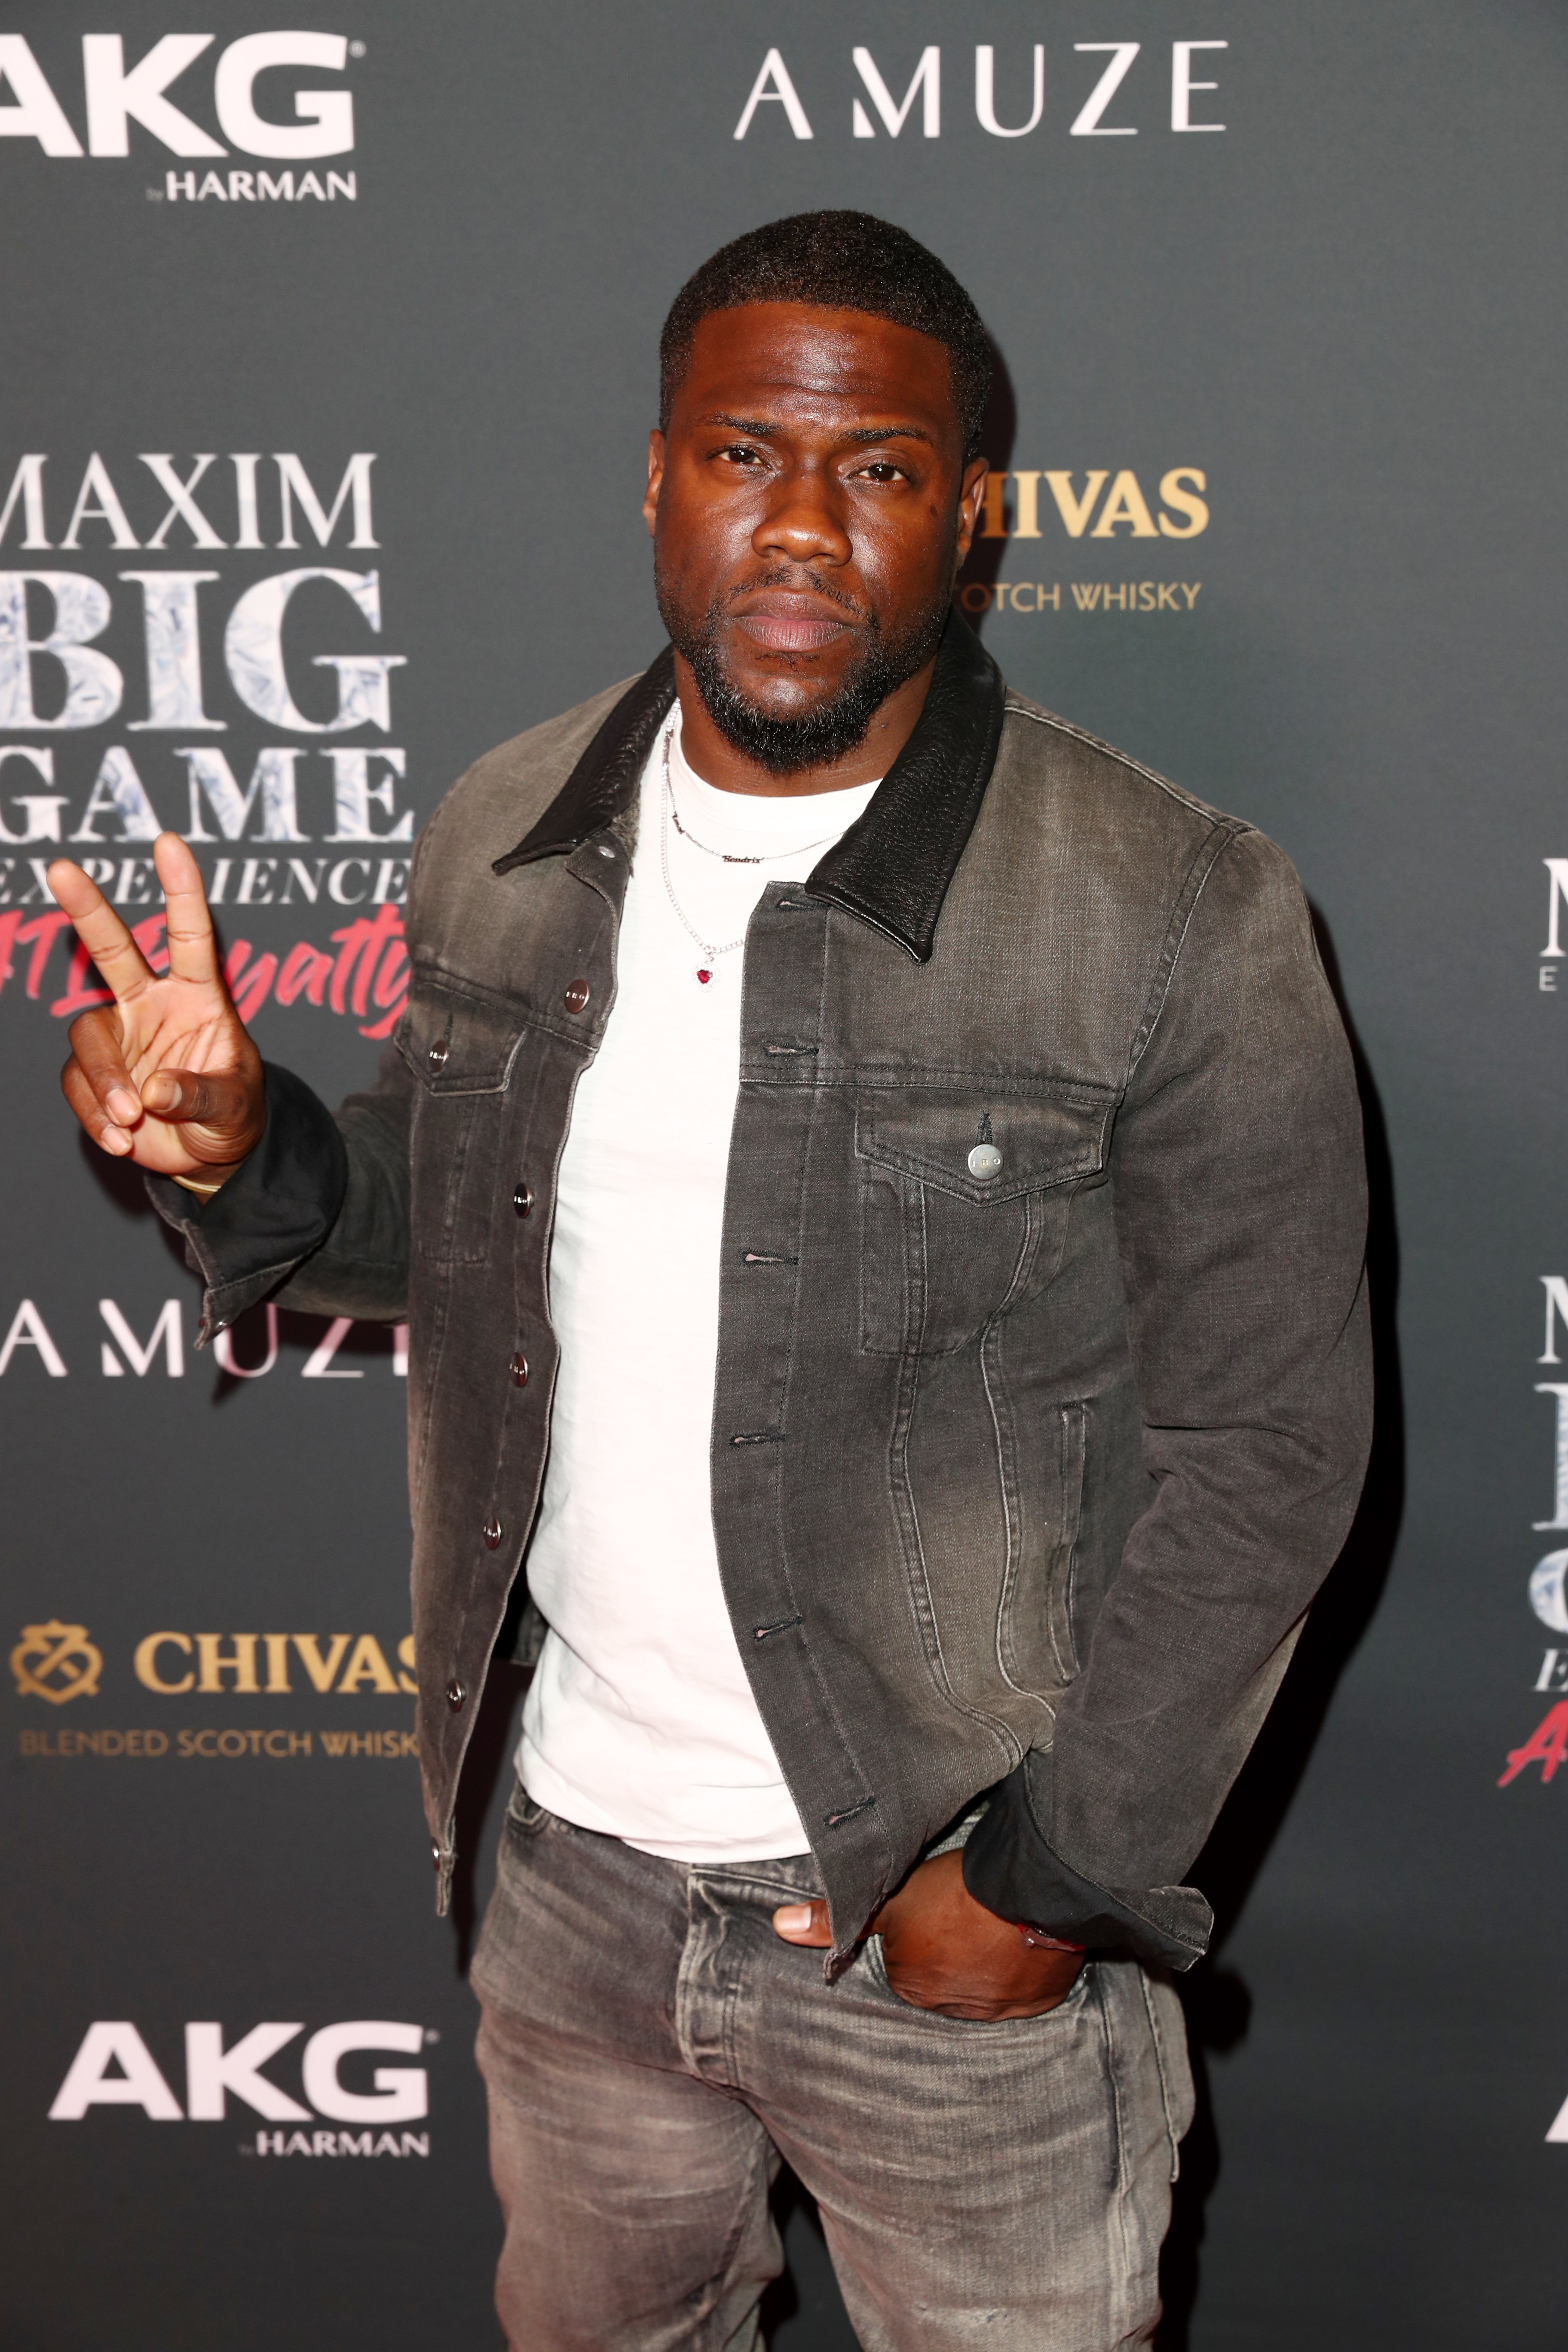 Kevin Hart attends The Maxim Big Game Experience on February 02, 2019, in Atlanta, Georgia. | Source: Getty Images.